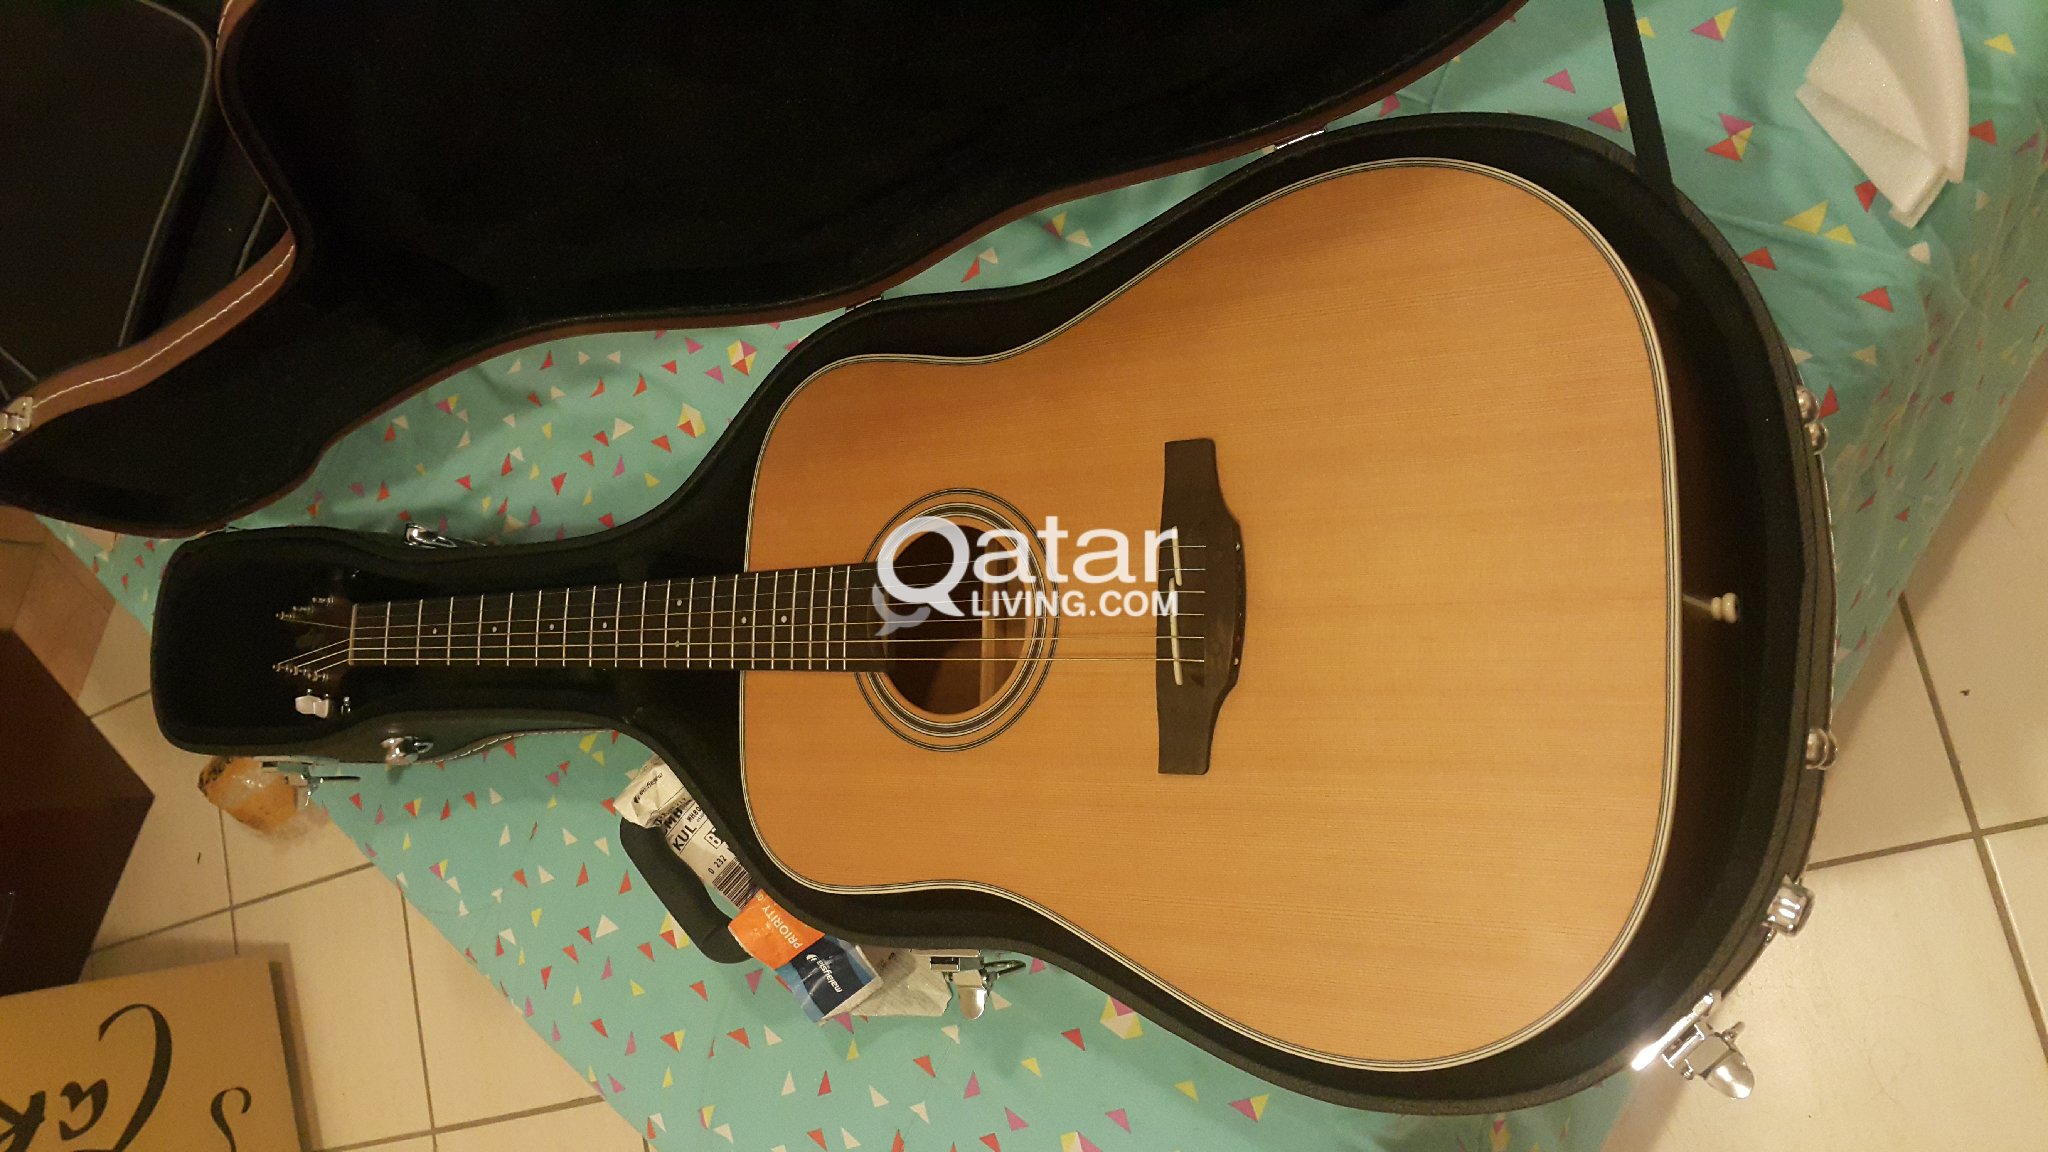 Hardcase (Only) for Dreadnought Acoustic Guitar